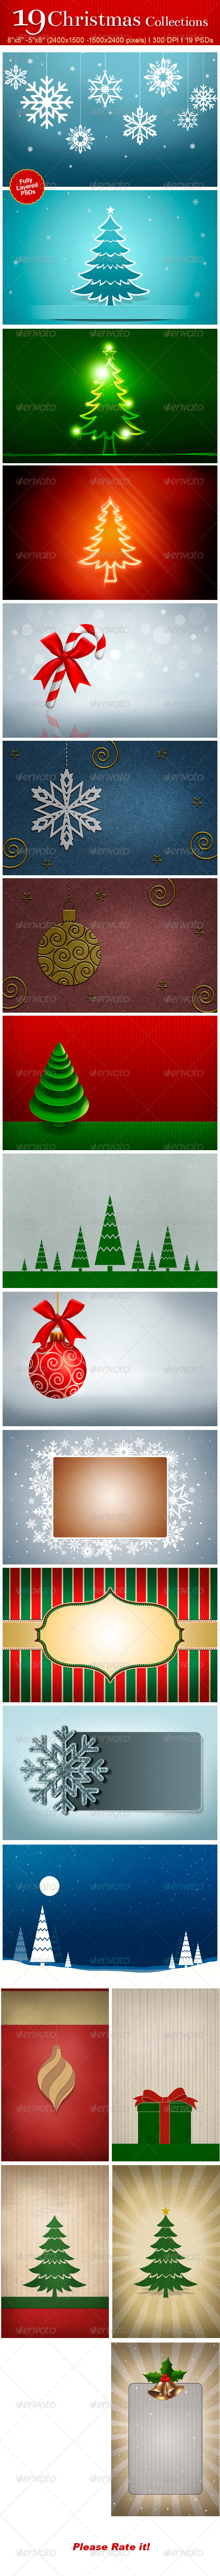 GraphicRiver 19 Christmas Collections 3356924